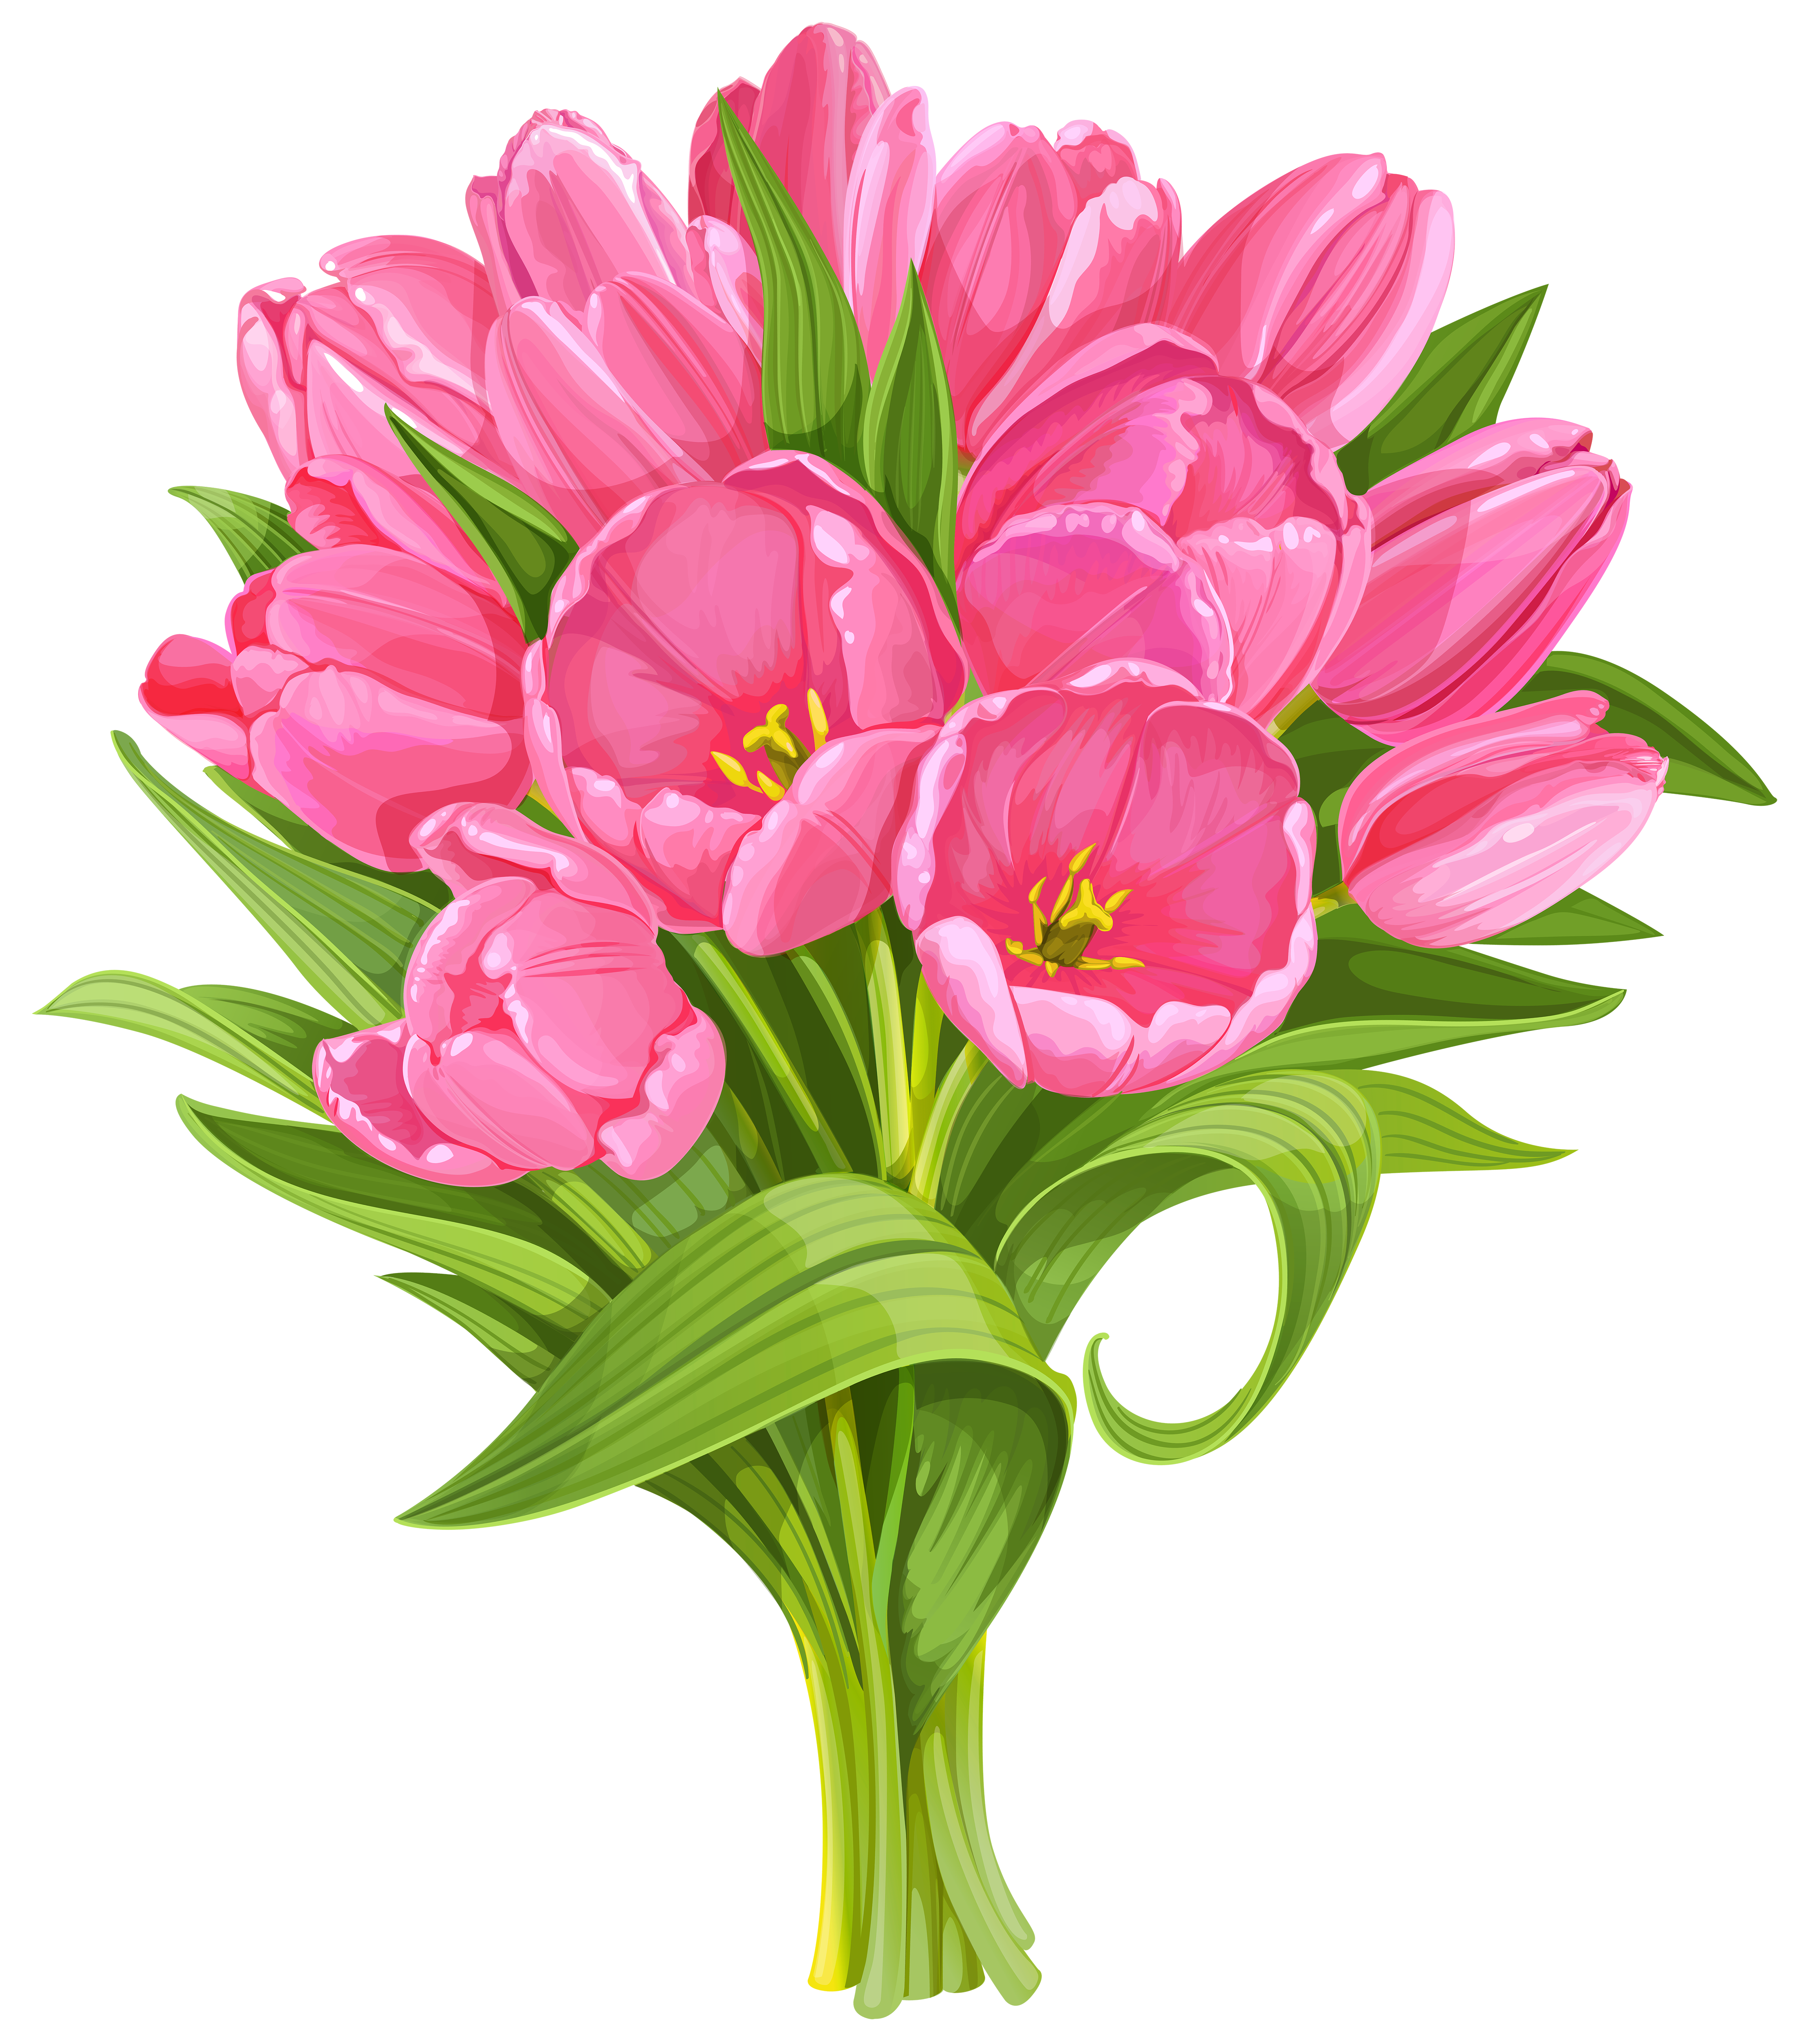 Flower bouquet clipart graphic free stock Tulips Bouquet Transparent PNG Clip Art | Gallery Yopriceville ... graphic free stock